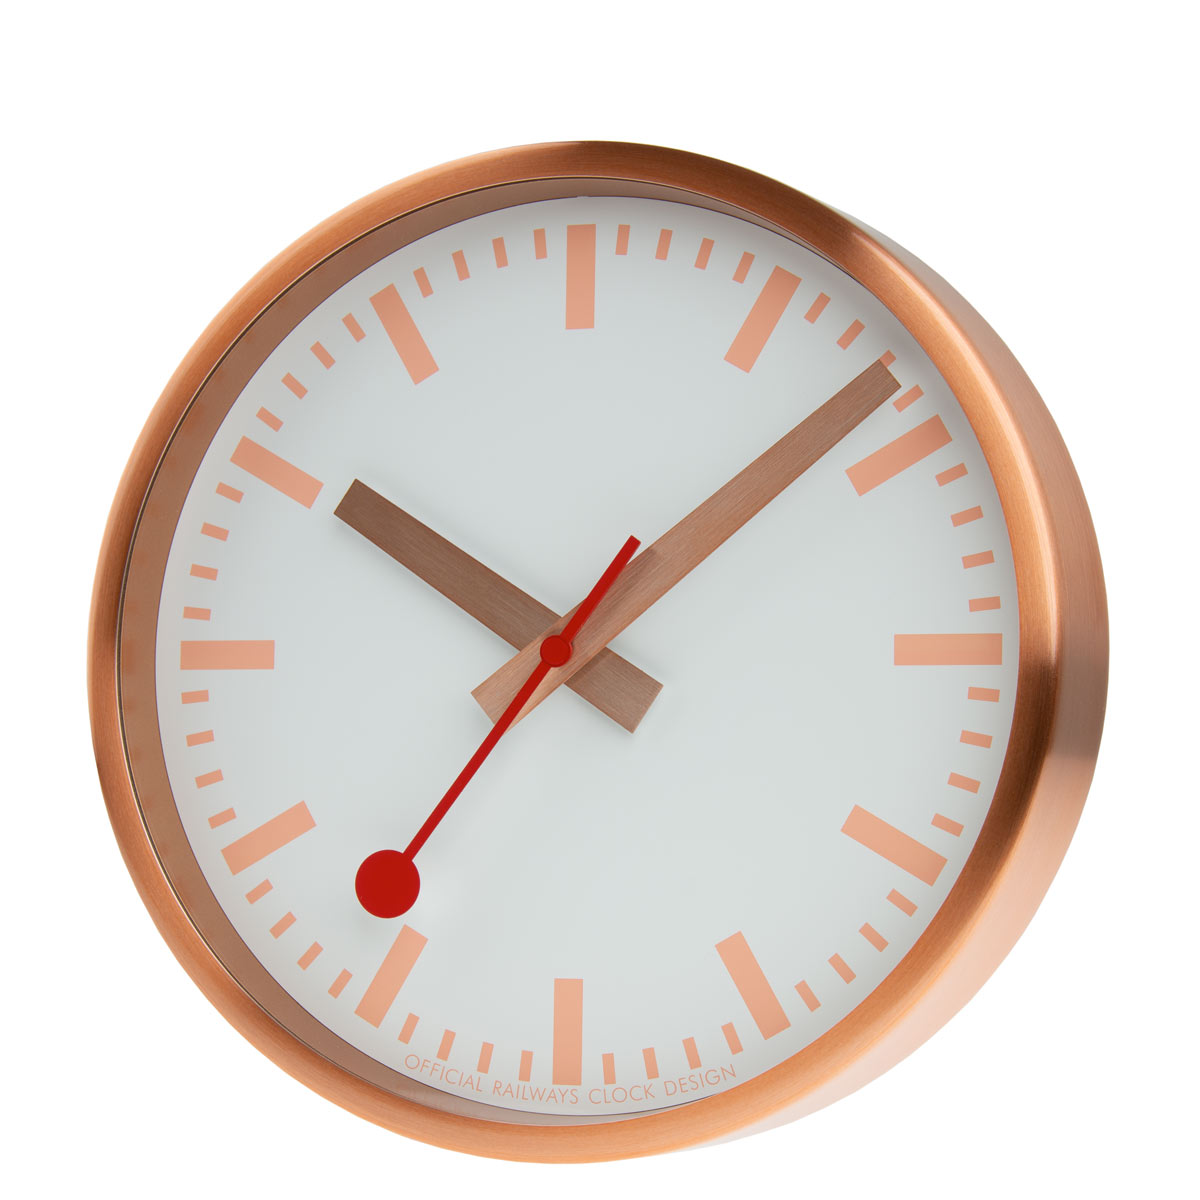 Mondaine-wall-clocks-copper-2-slanted-web